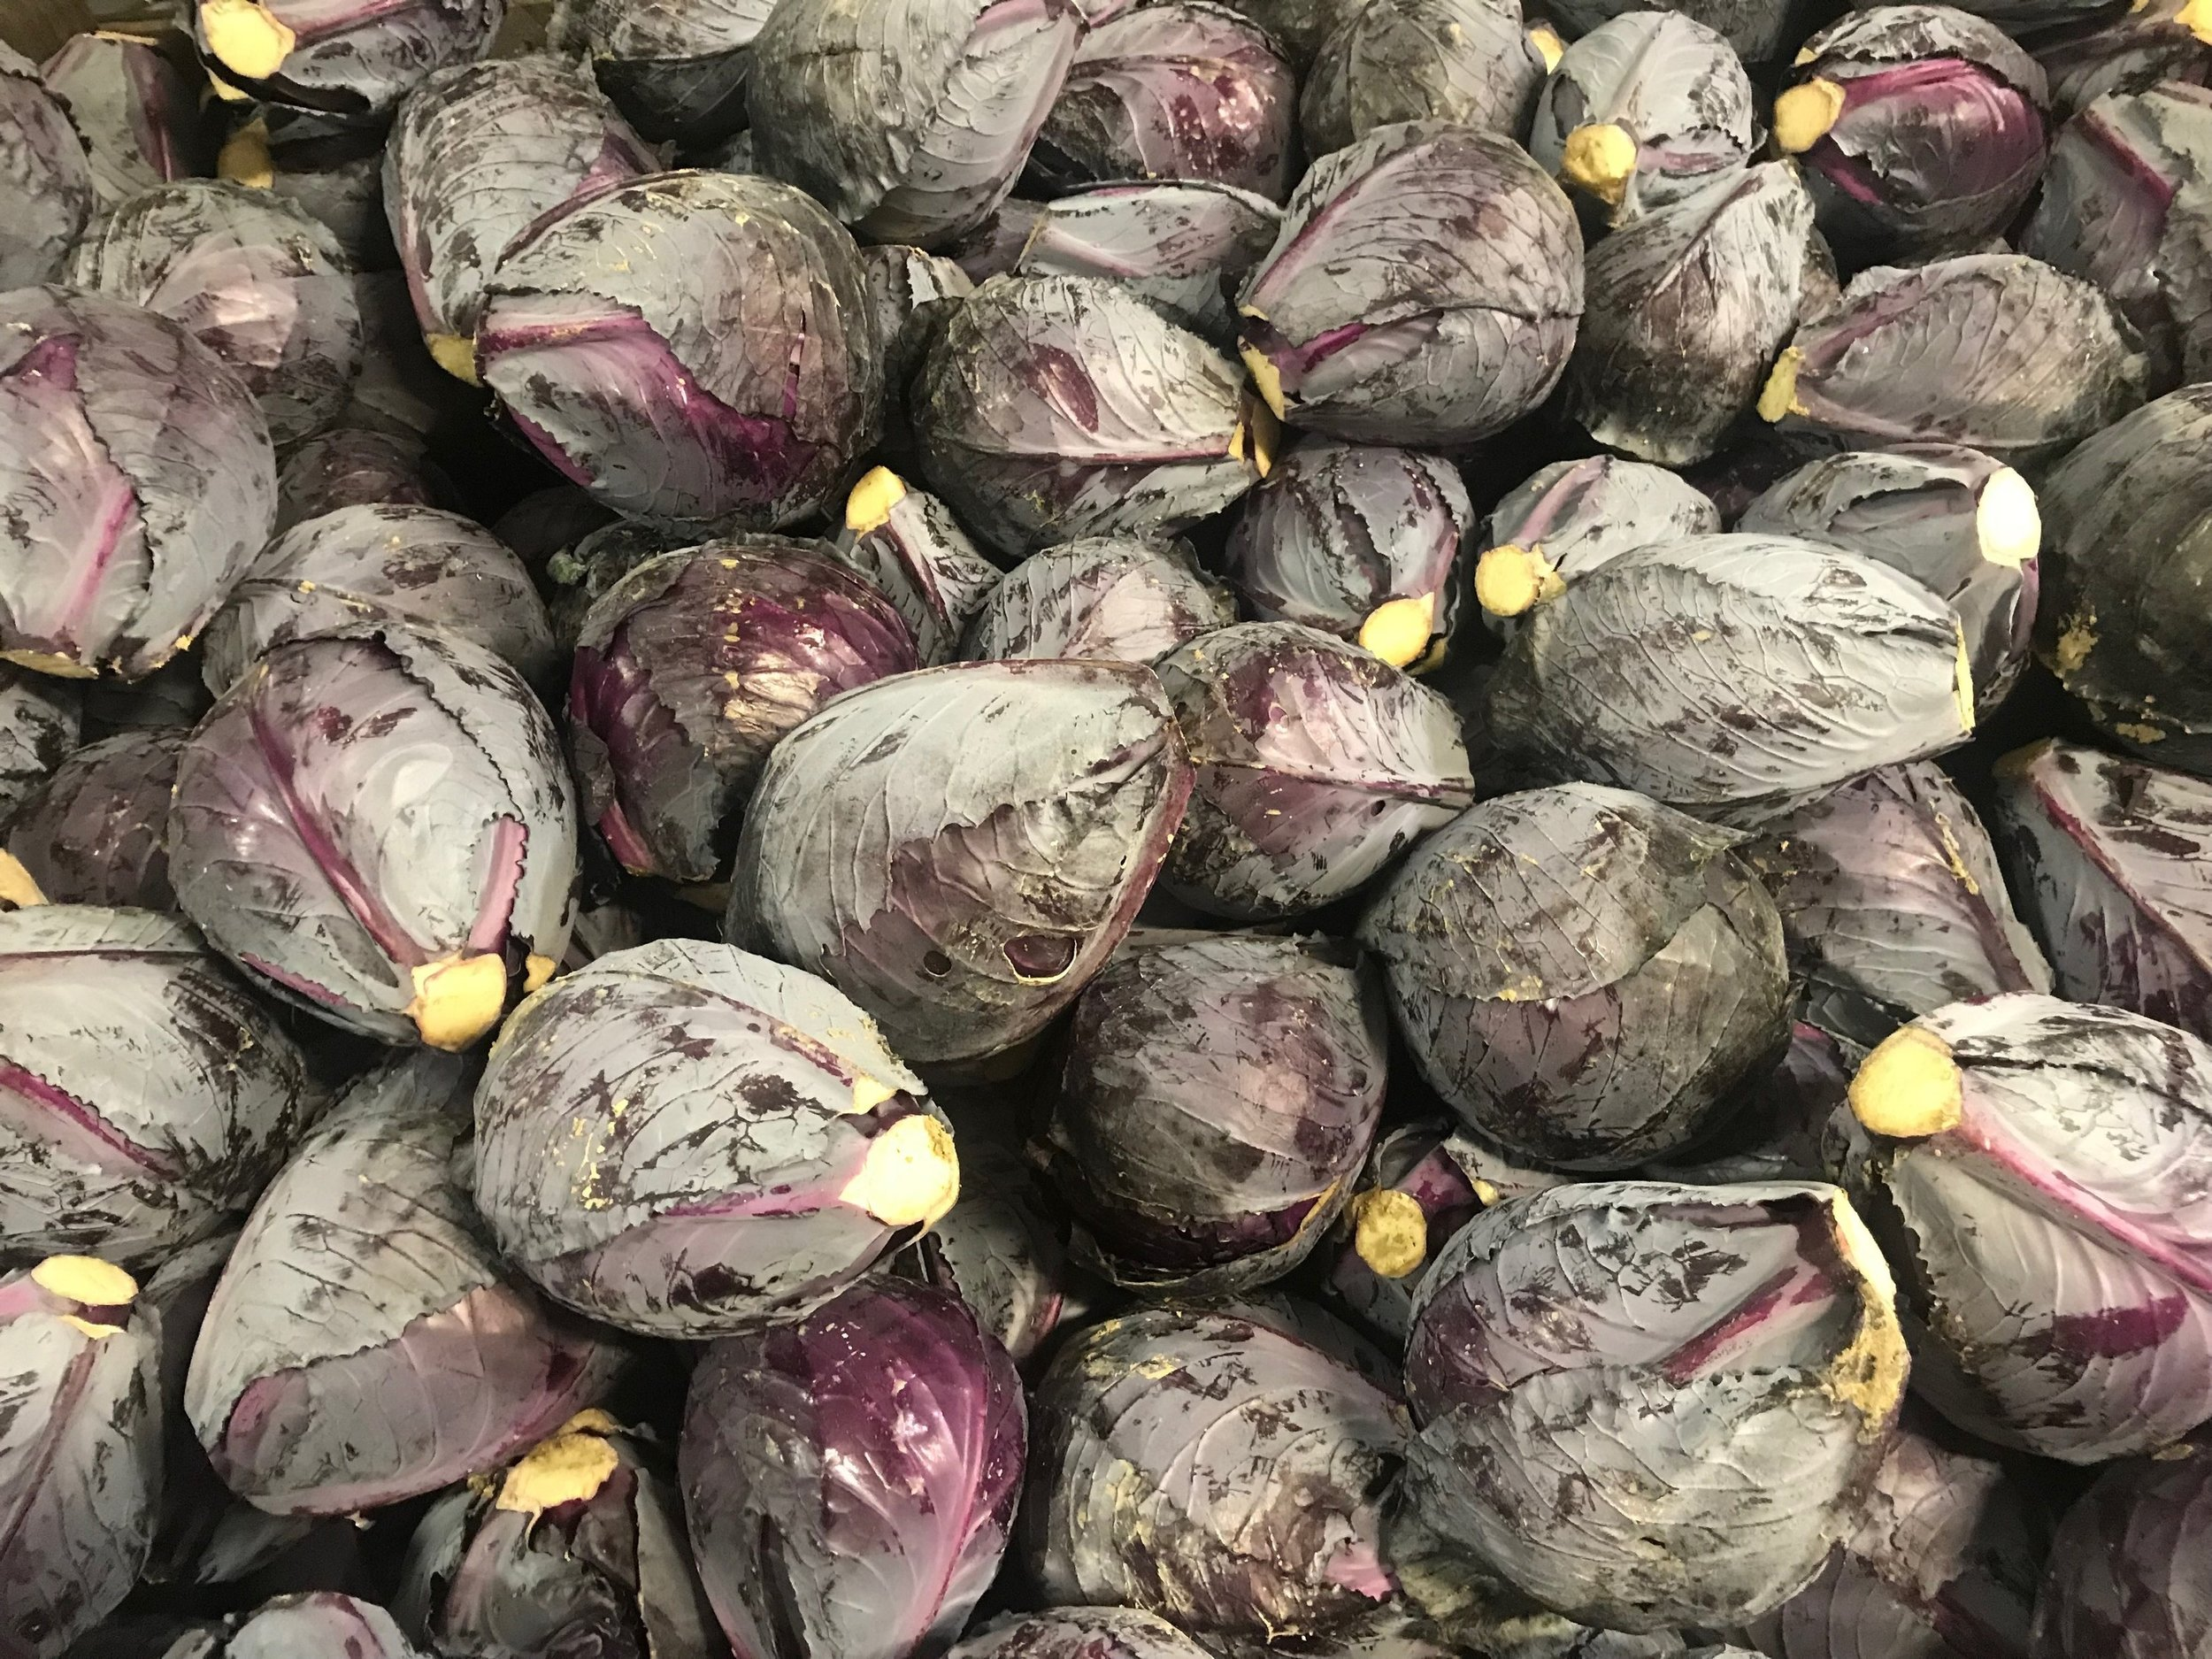 Red cabbage from our friends at Markristo Farm in Hillsdale, New York